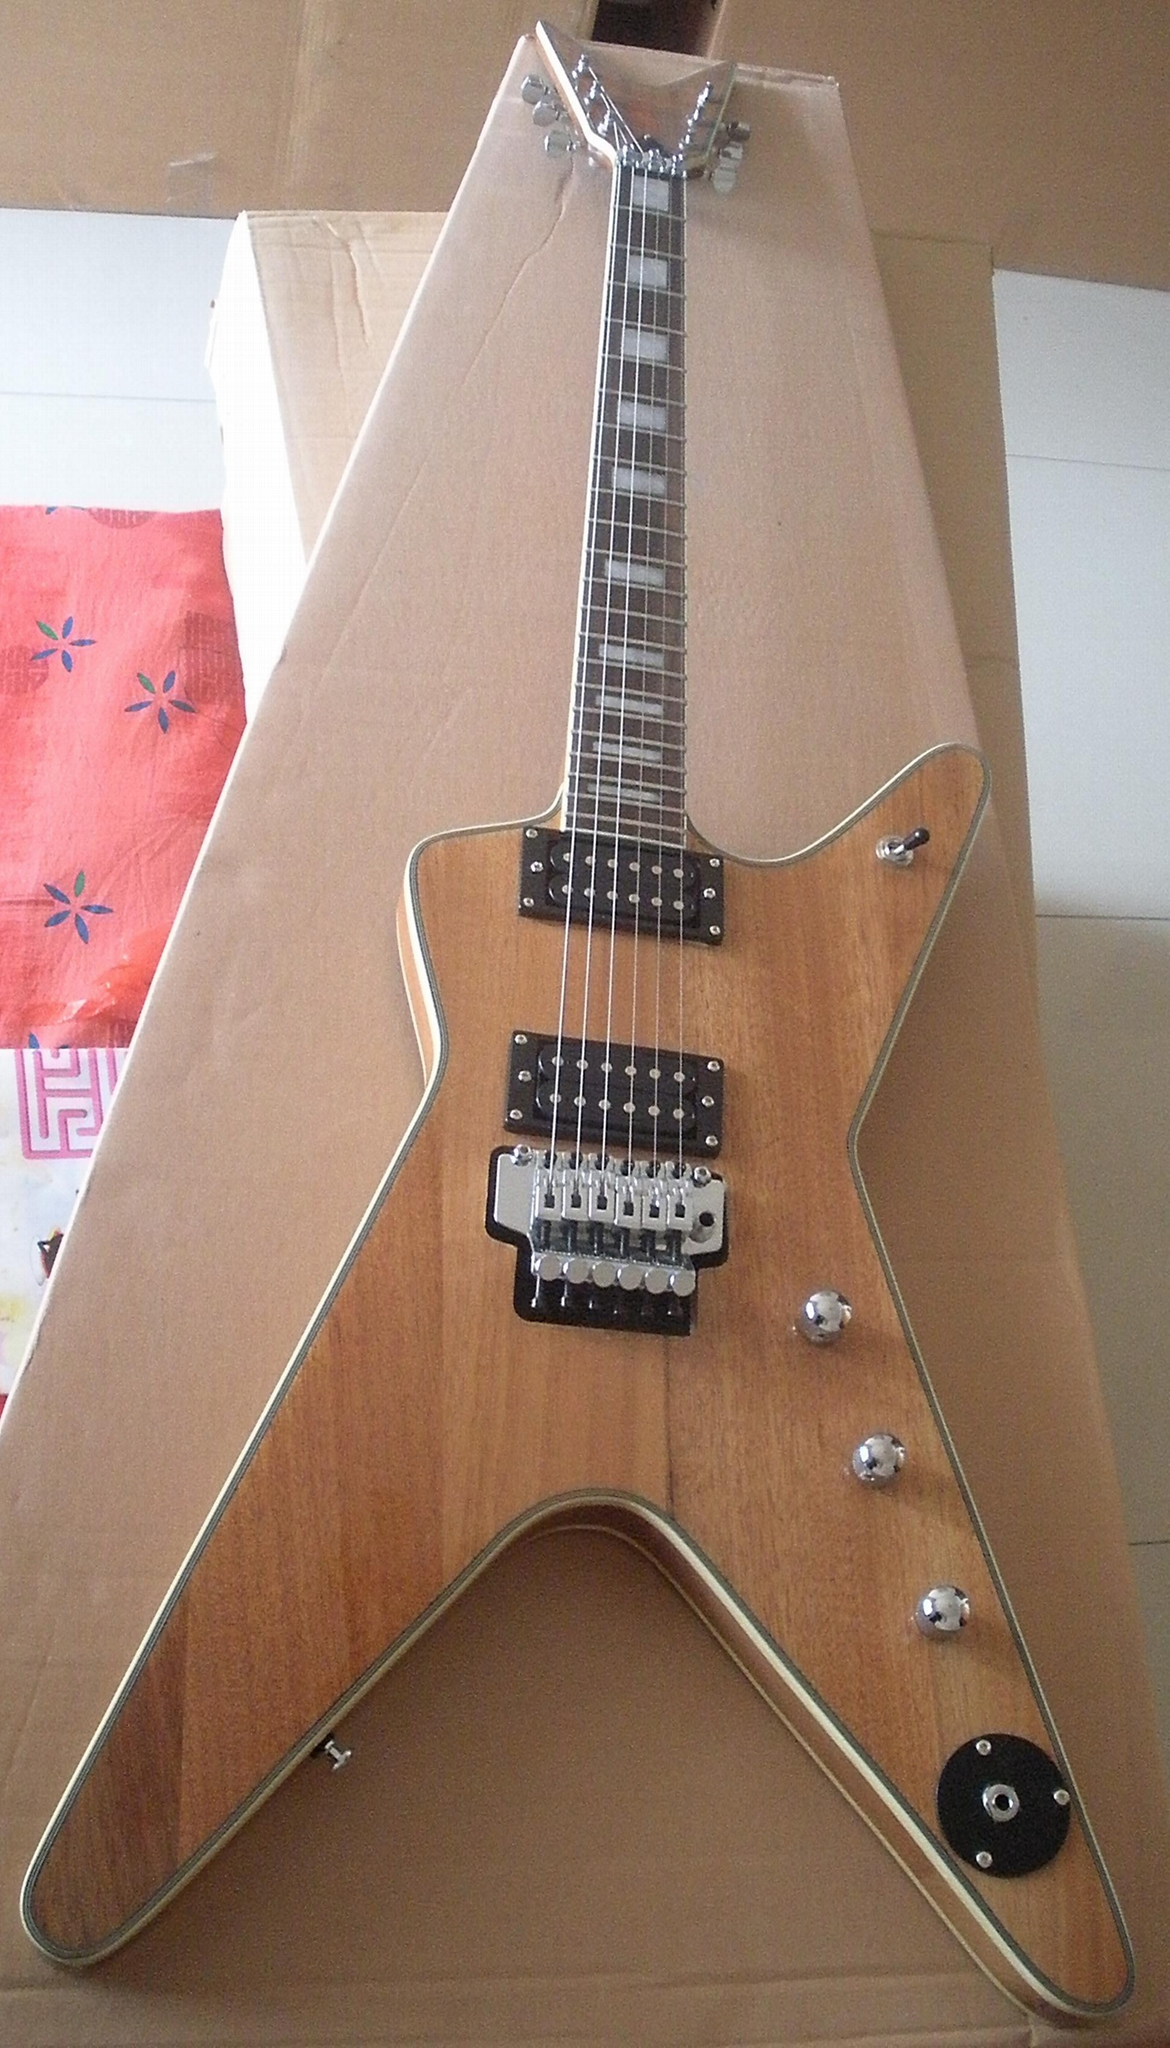 2020 Jingying Music Flying Style Electric Guitars 9